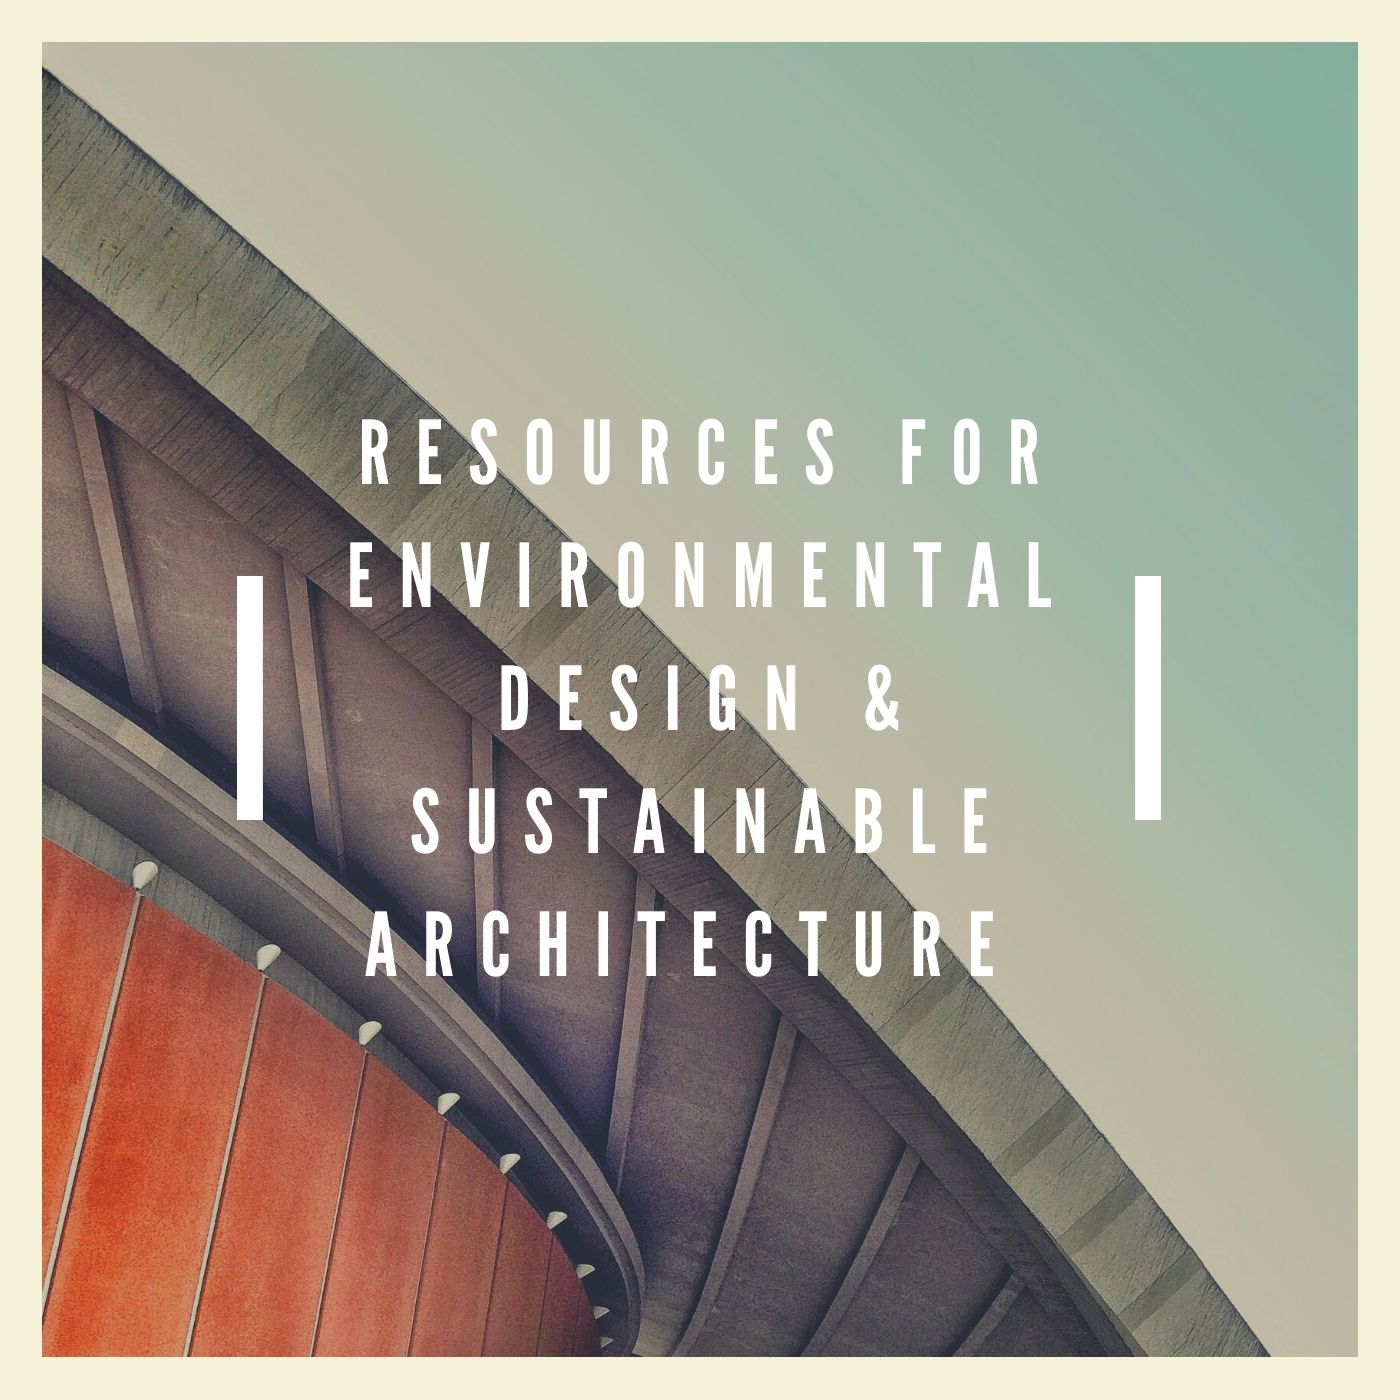 Resources for Environmental Design & Sustainable Architecture (Online Workshop)